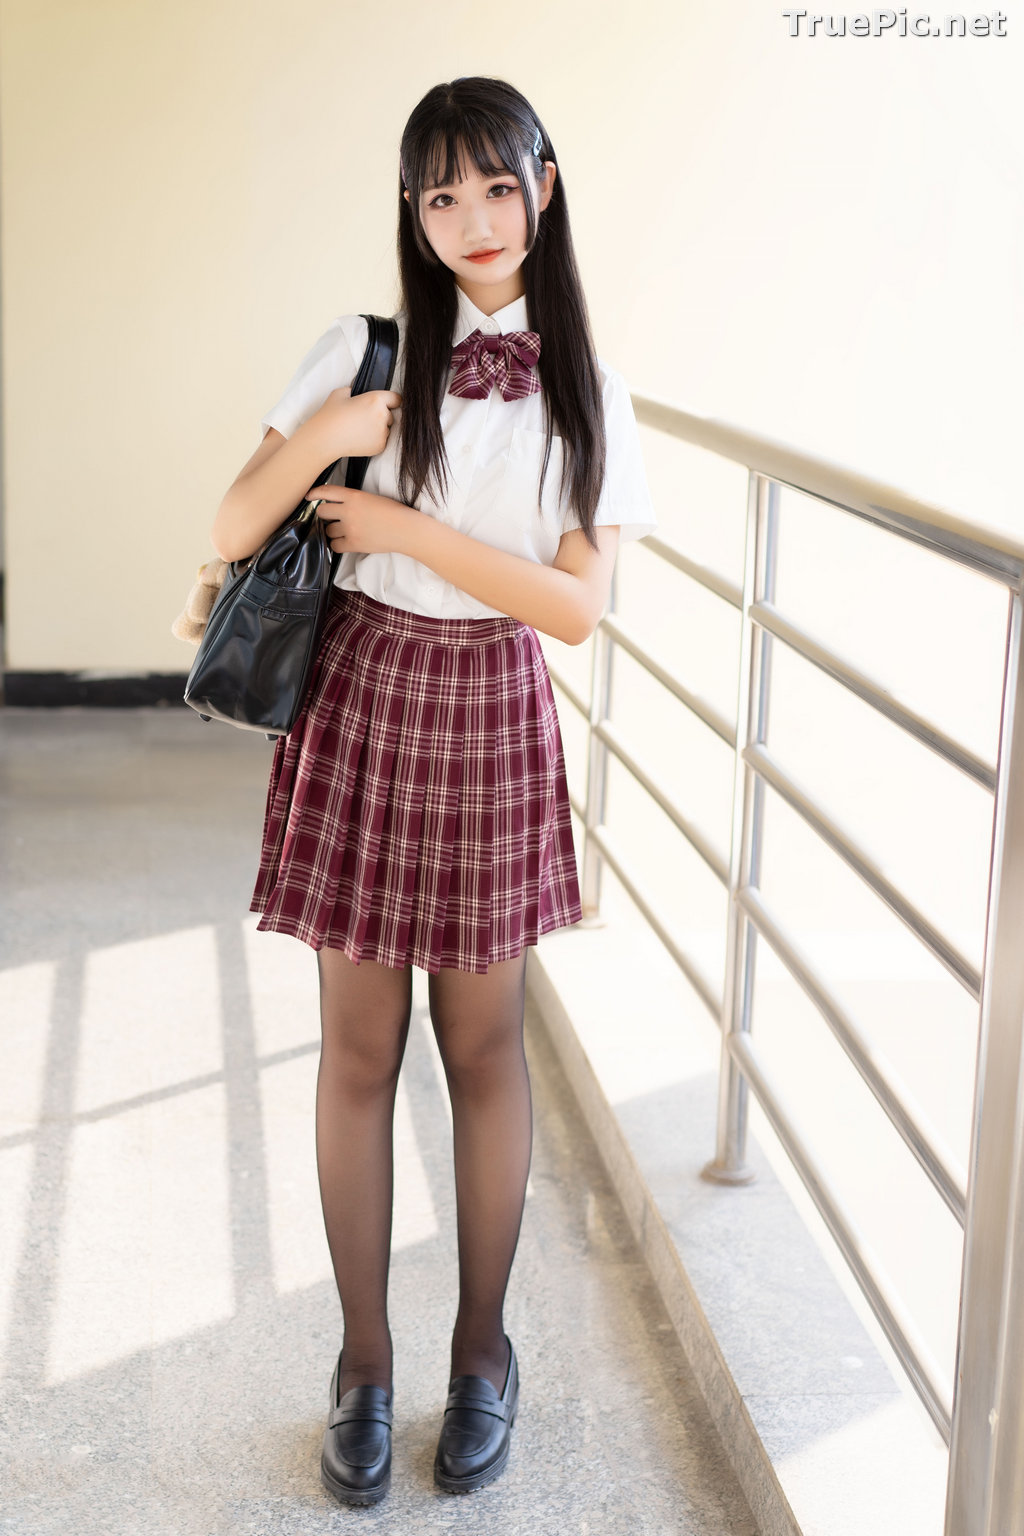 Image [MTCos] 喵糖映画 Vol.023 – Chinese Cute Model – Long Hair JK Girl - TruePic.net - Picture-5